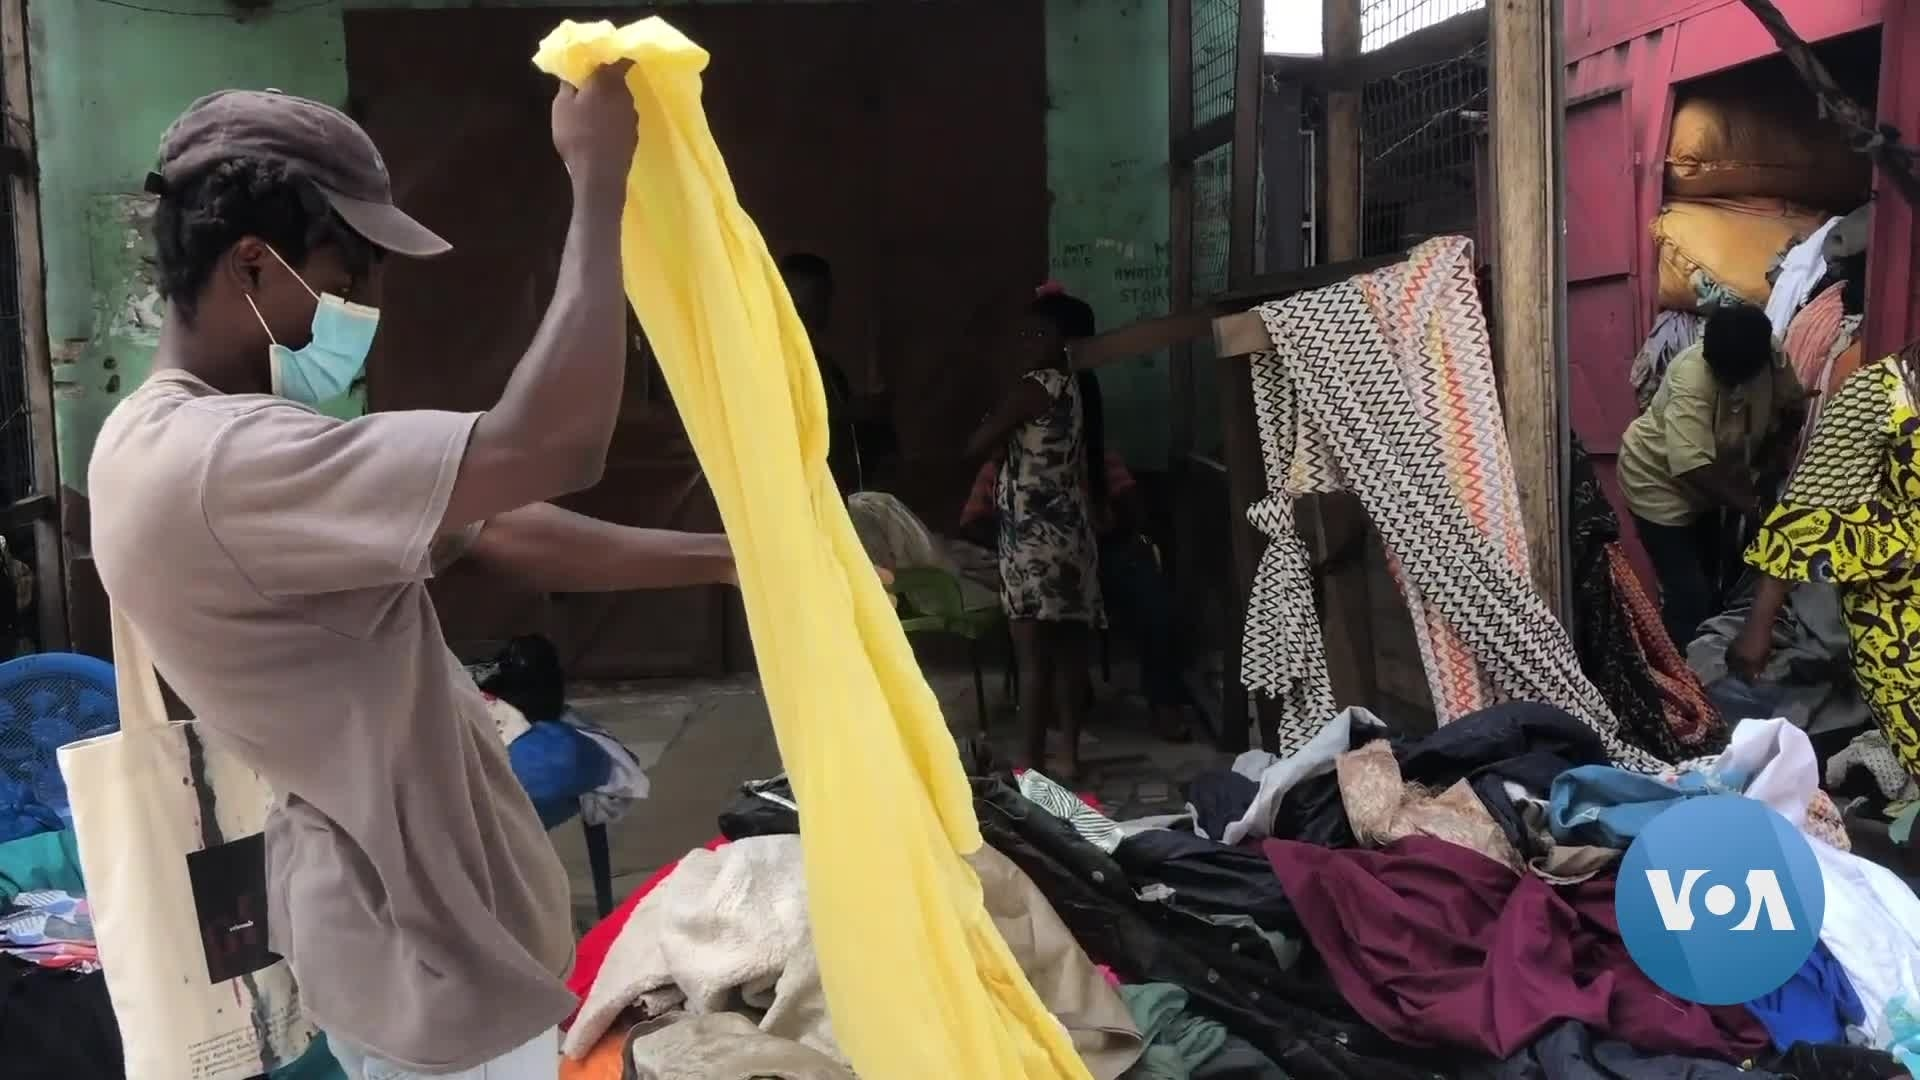 Ghana's Used Clothing Market Falters as COVID Bans, Poverty Intersect | Voice of America